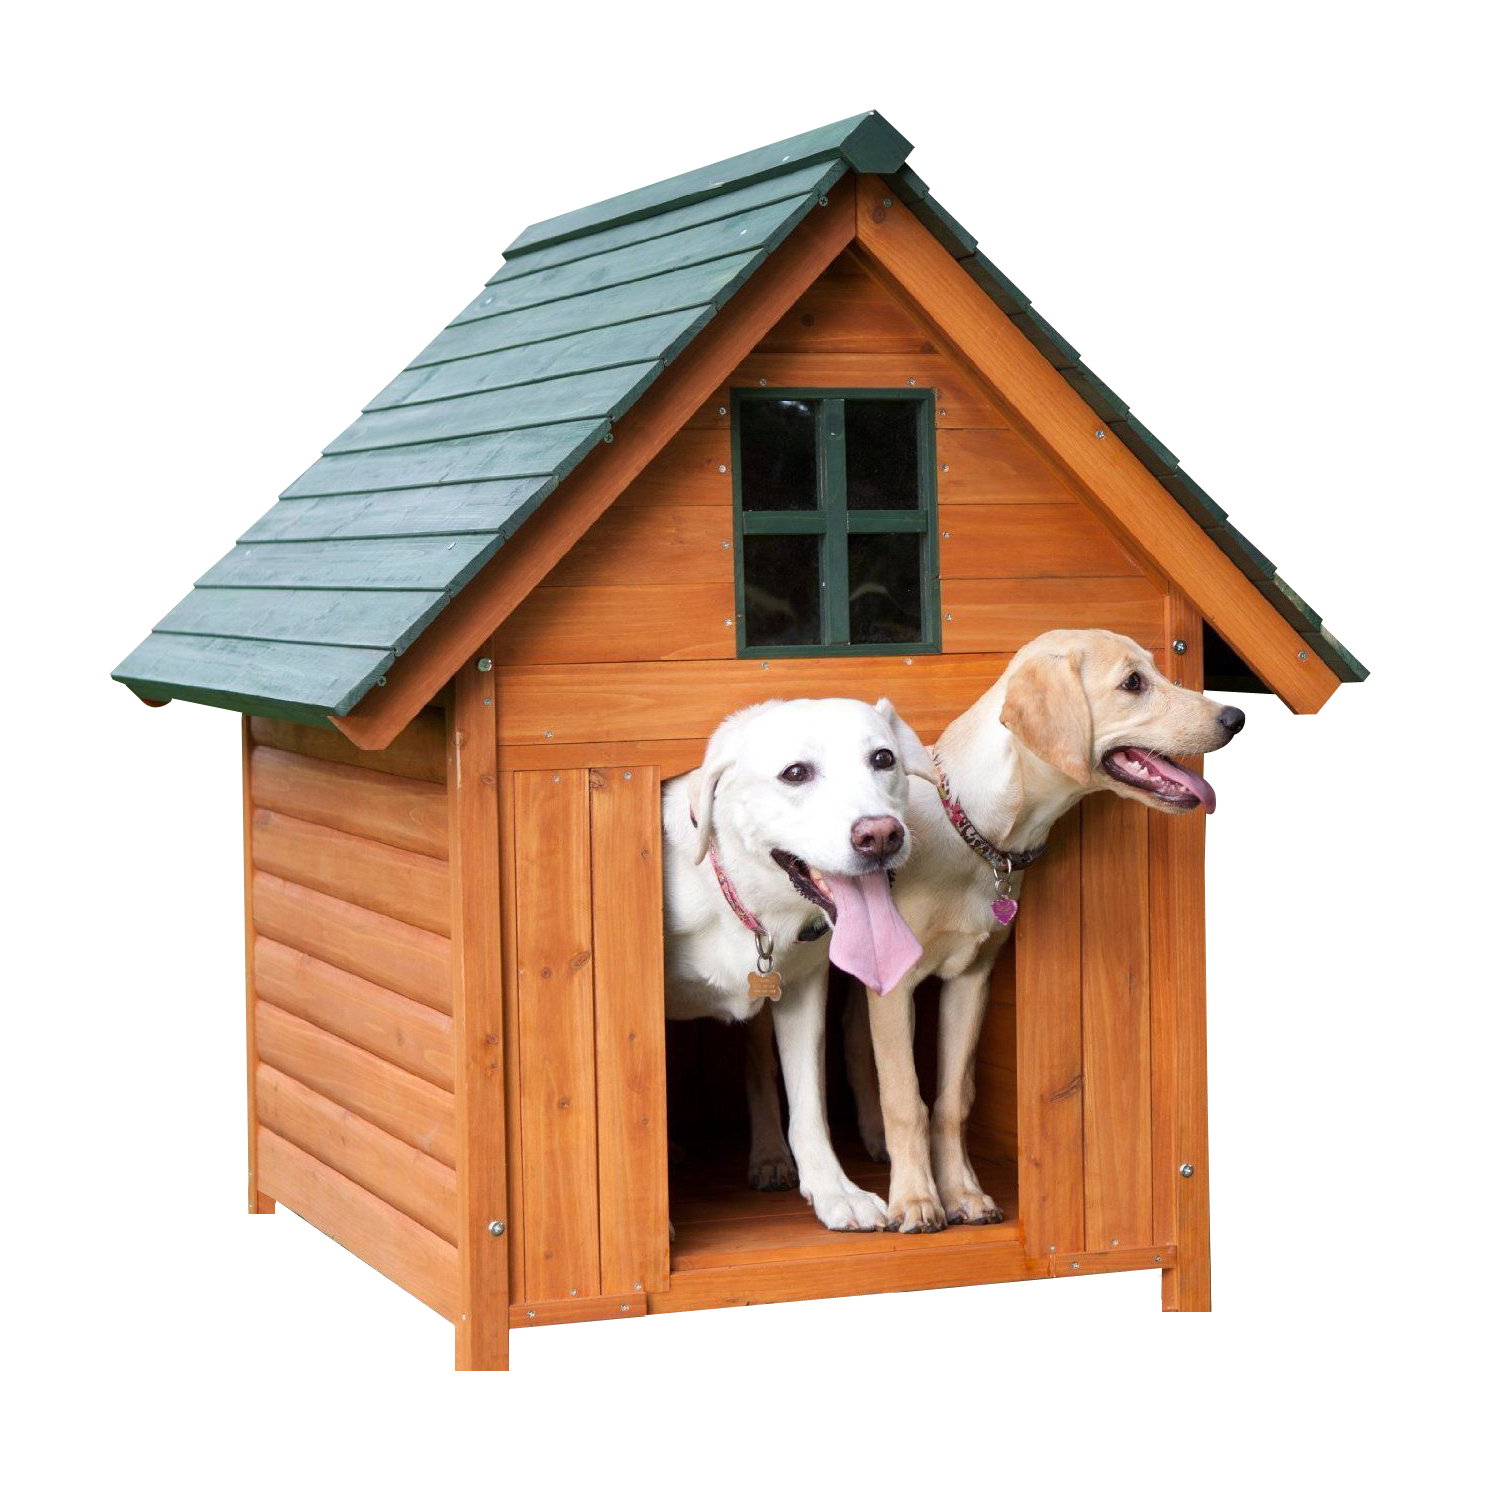 Dog House Png Image Cool Dog Houses Dog Houses Outdoor Dog Bed